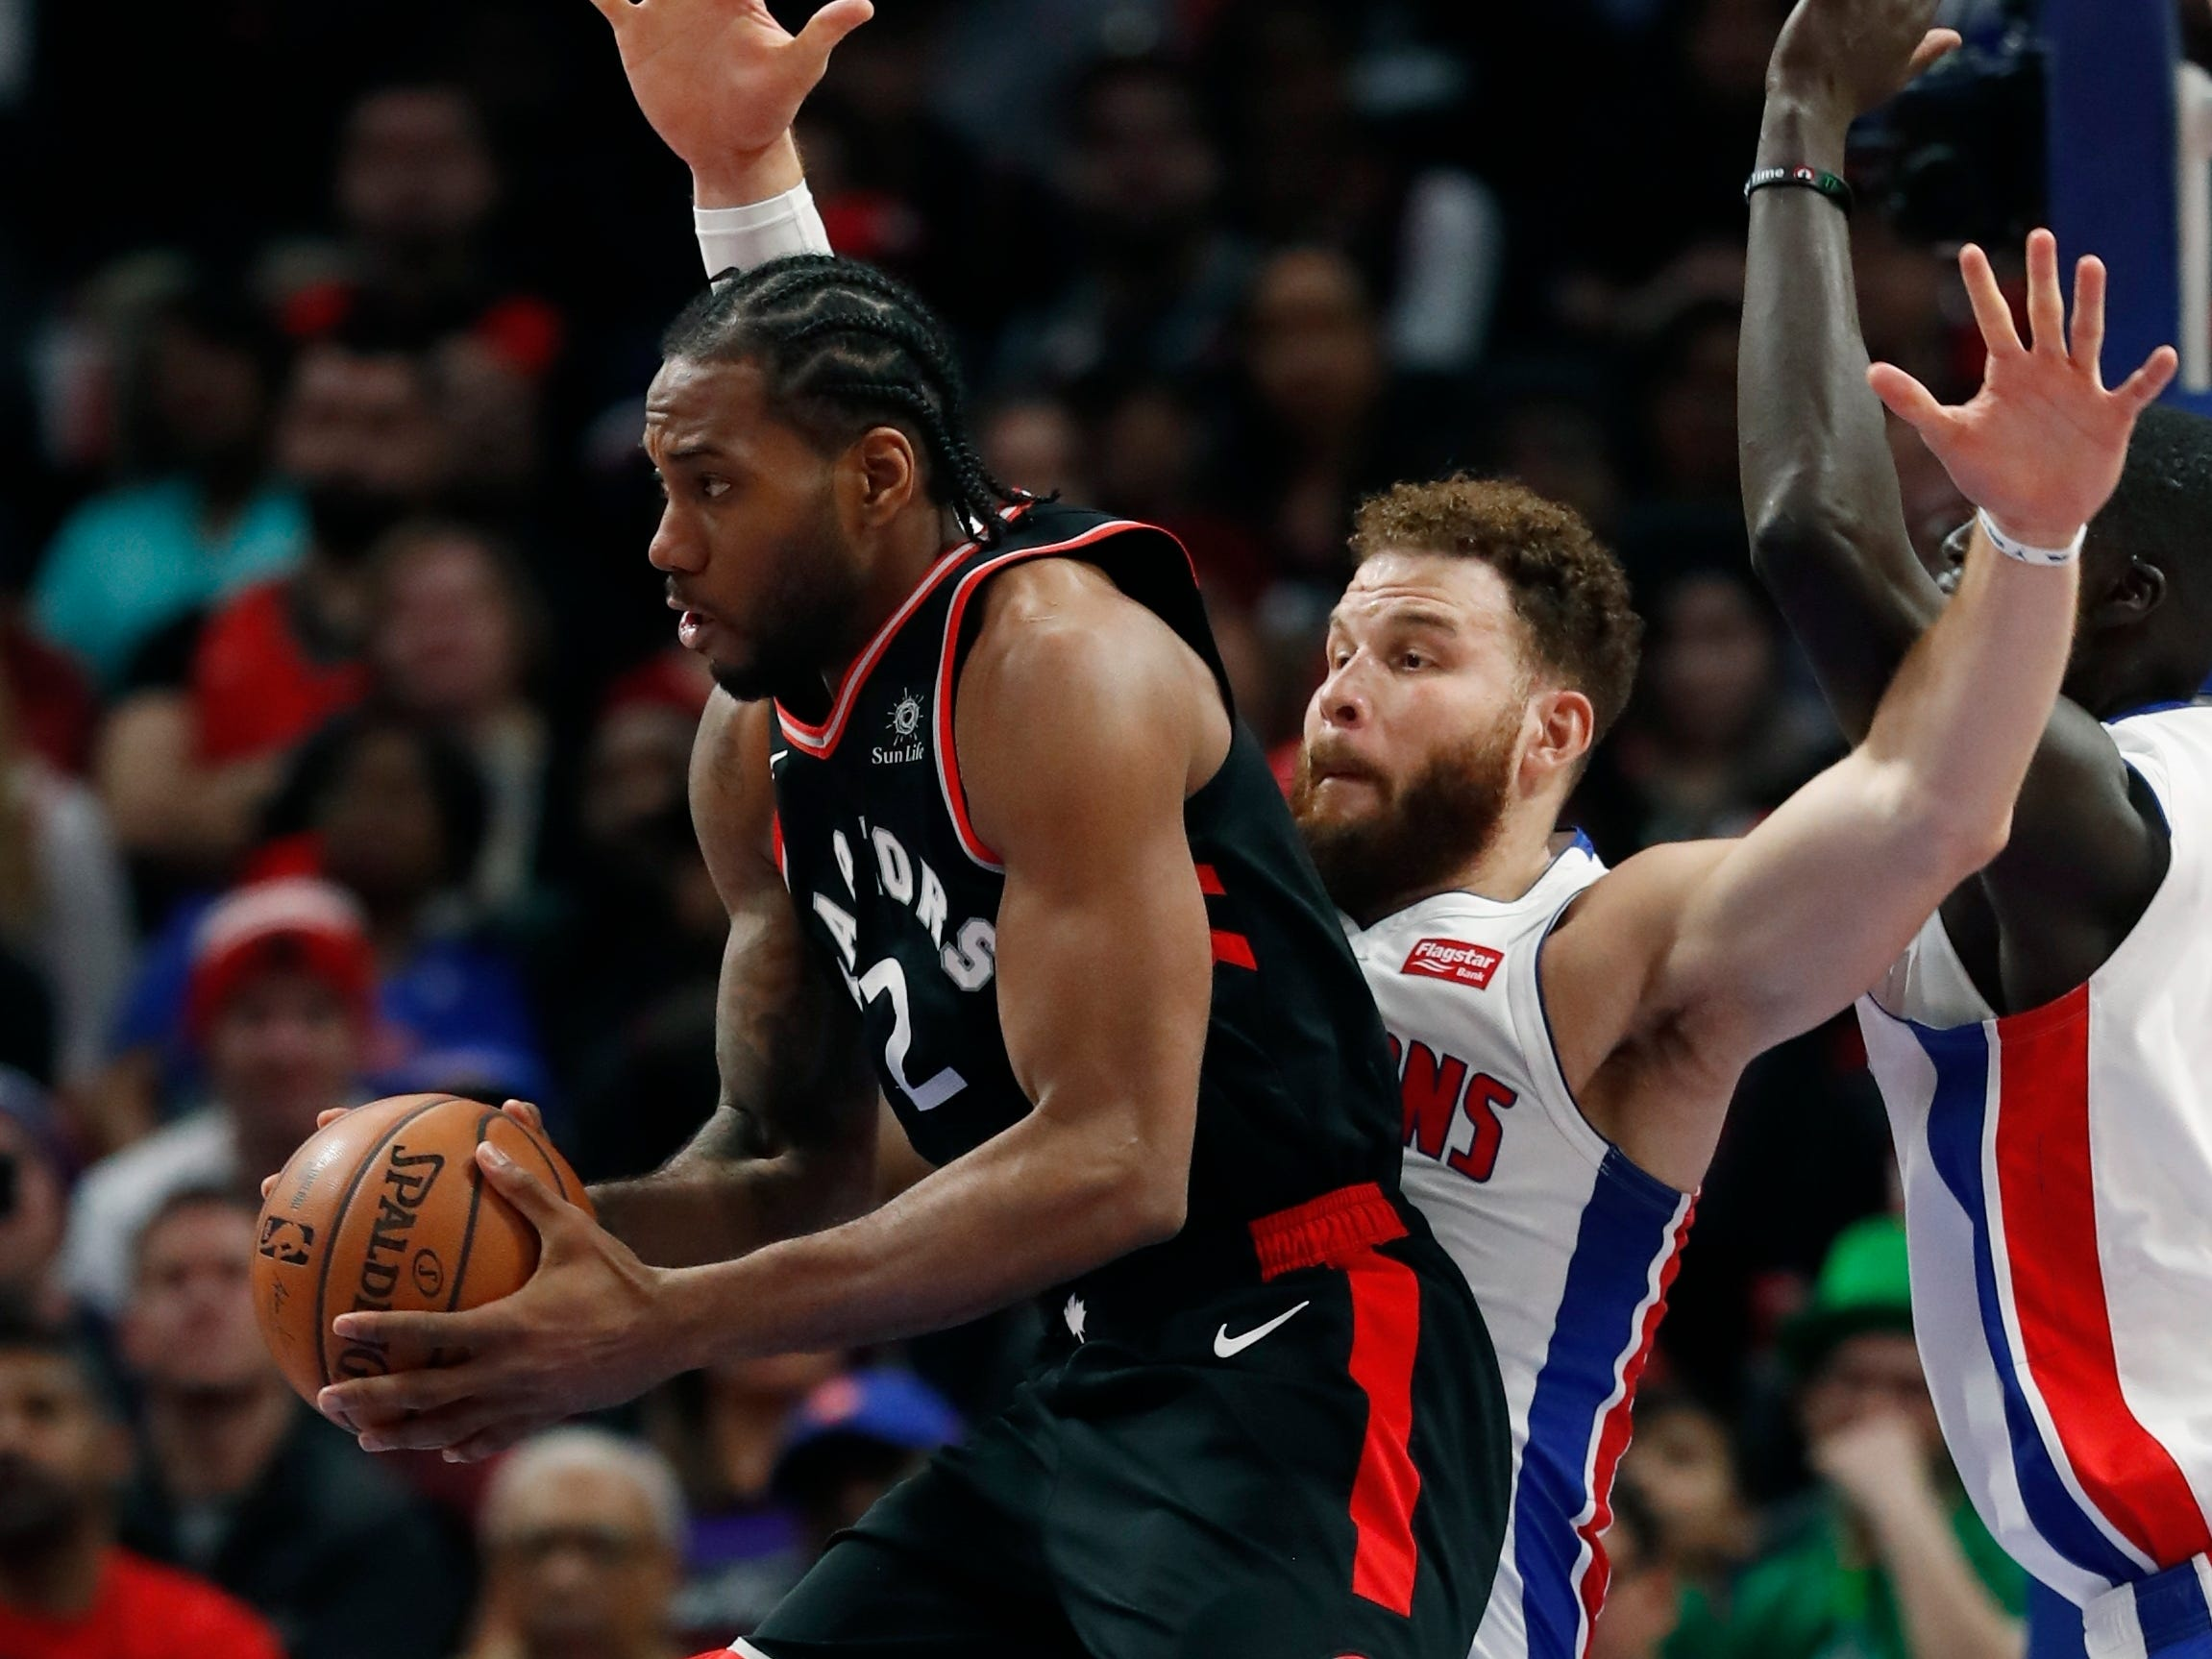 Toronto Raptors forward Kawhi Leonard passes as Blake Griffin defends during the second half of the Detroit Pistons' 110-107 win Sunday, March 17, 2019, in Detroit.